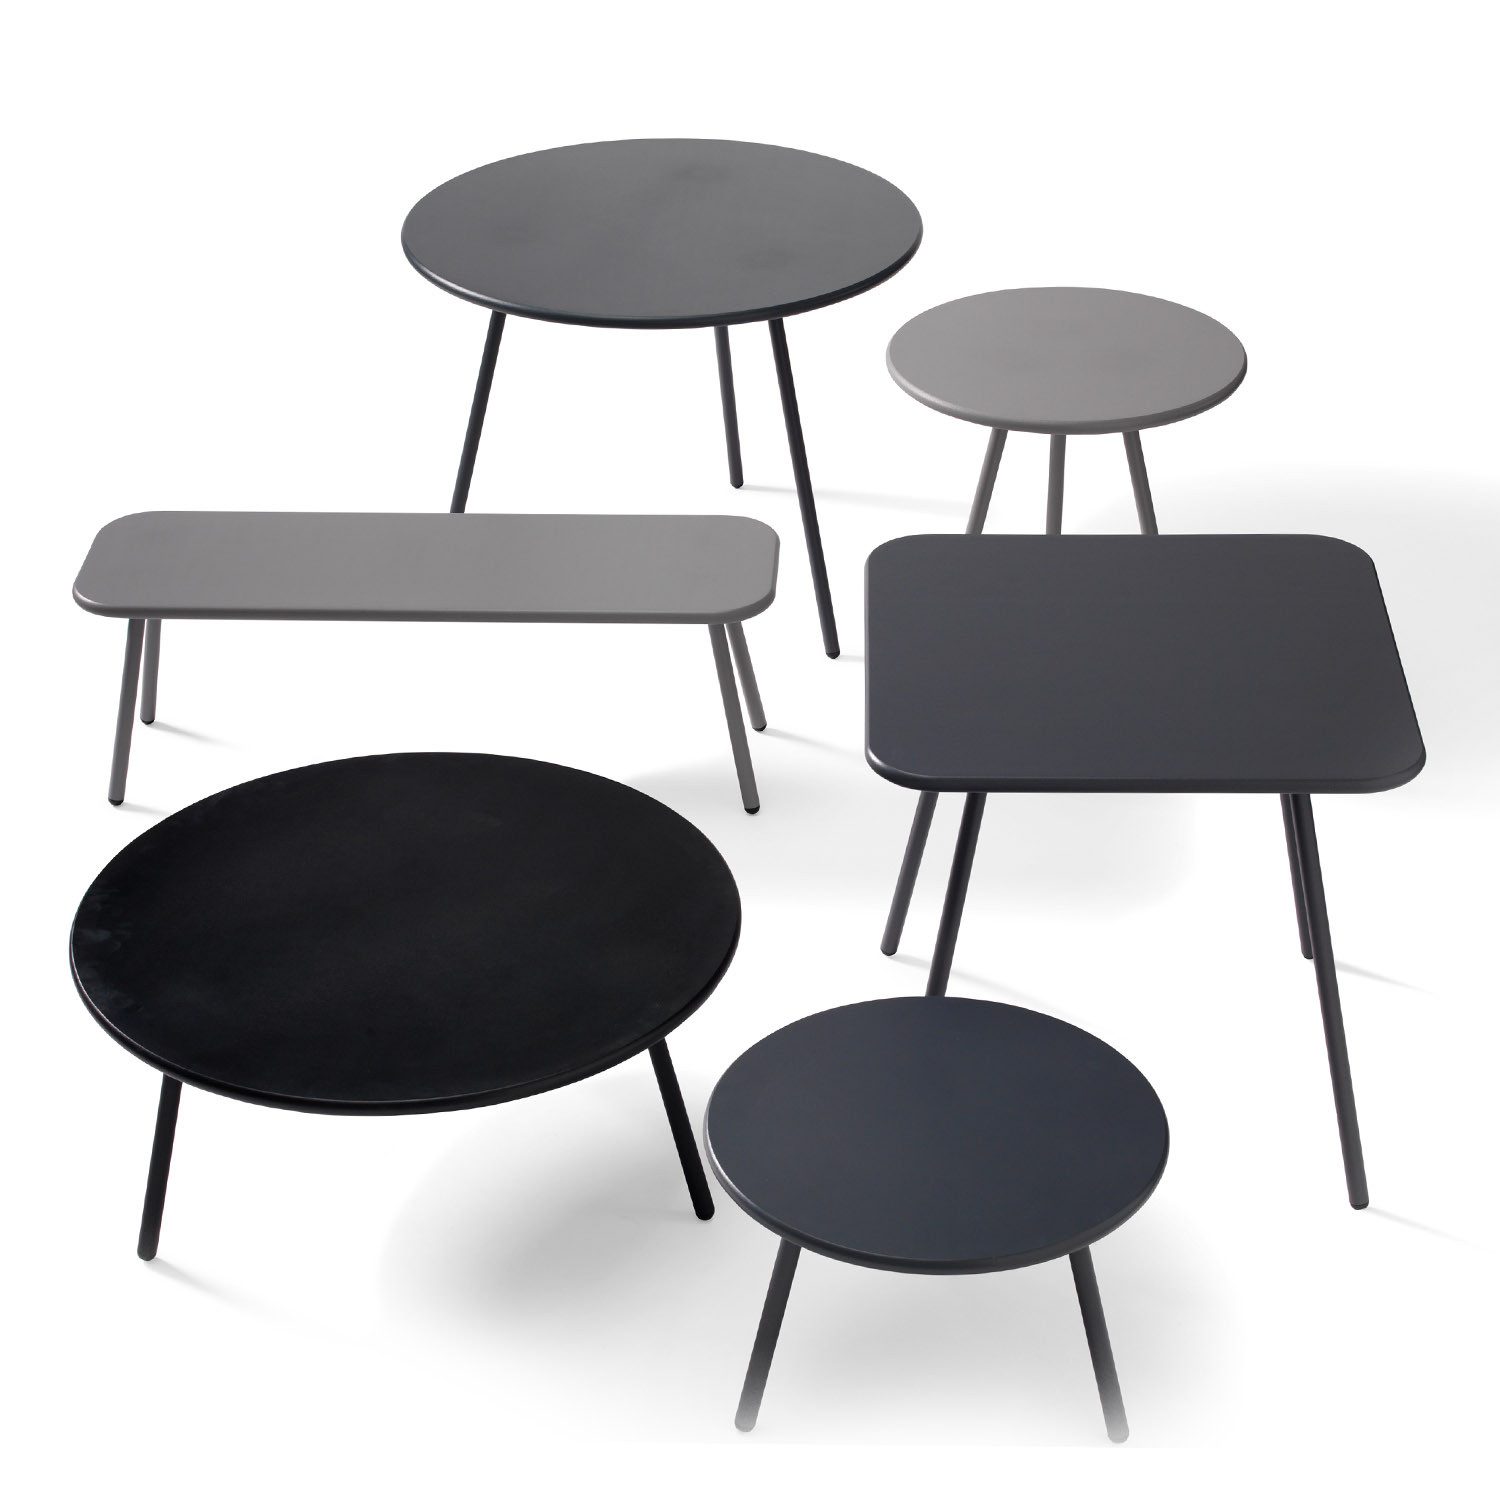 Kaffe Tables Range by Thomas Bernstrand